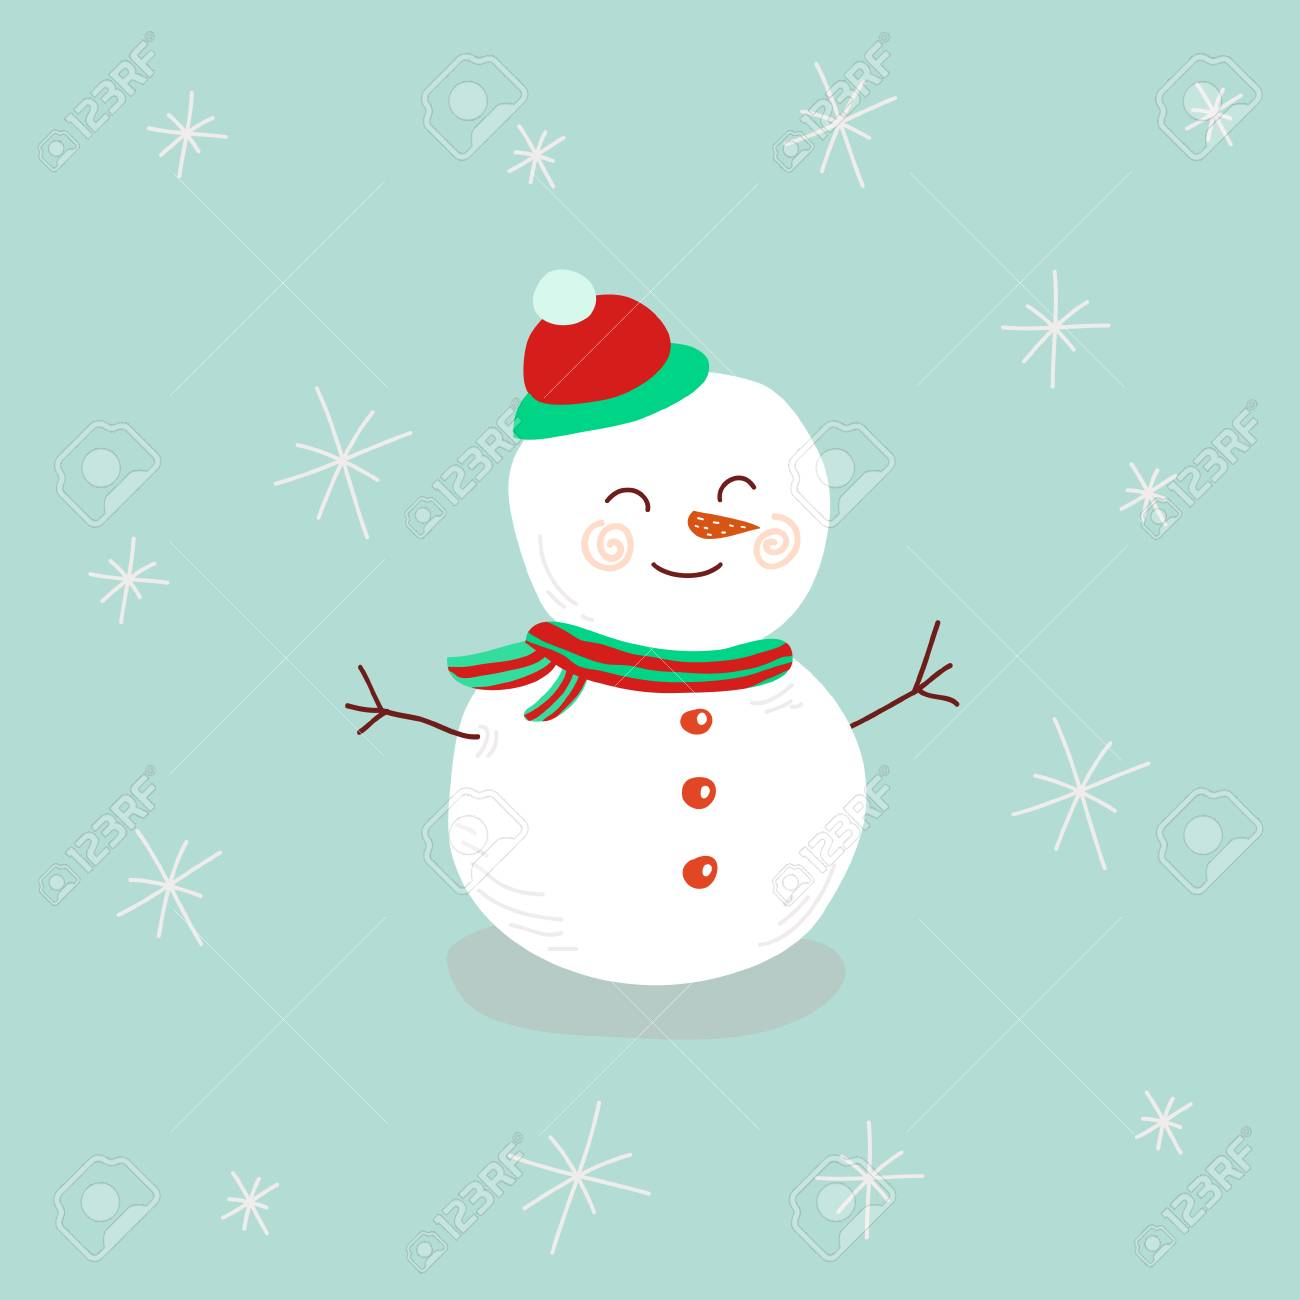 81a5ce0ffab6e Snowman Cute Illustration For Christmas And New Year Post Card ...